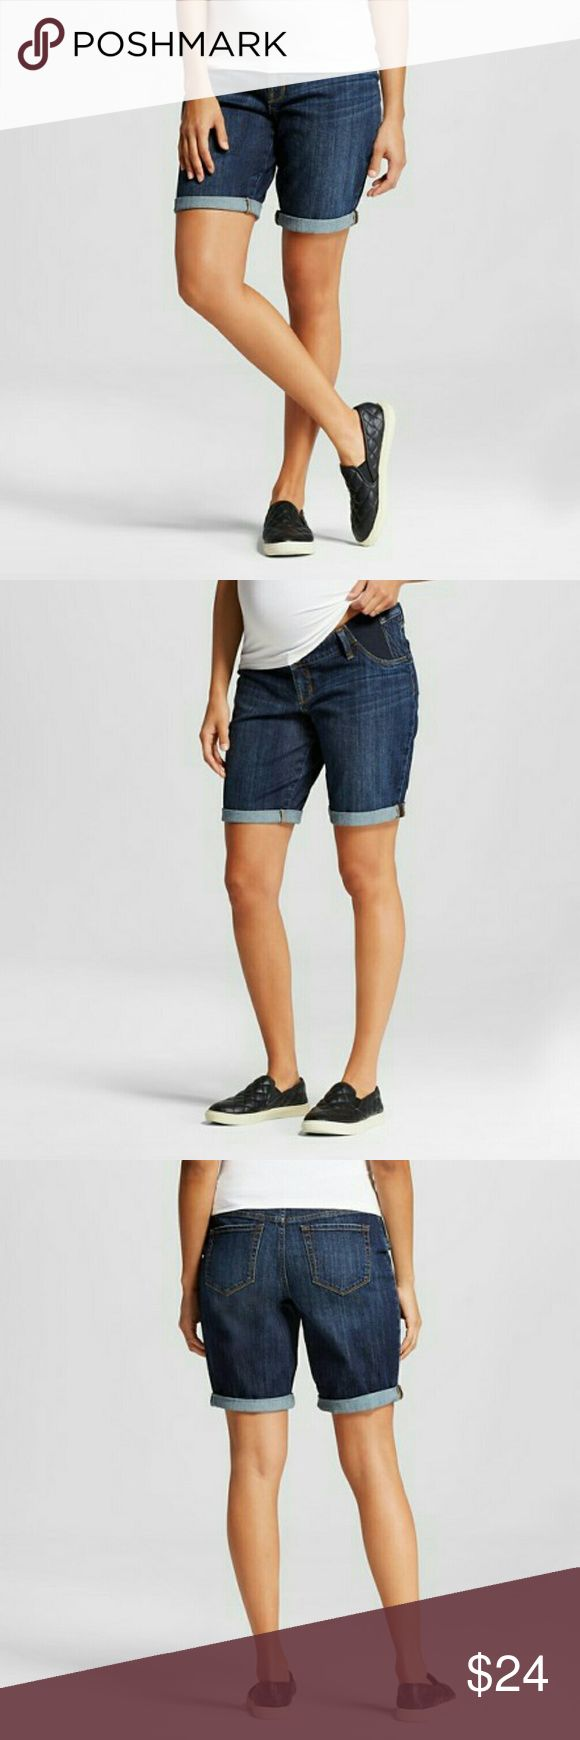 Liz Lange Bermuda Jean Short Shorts feature:  Elastic side inserts  11-inch inseam hits around mid-thigh Two back pockets Stretchy cotton and spandex denim  Mid-rise  Fly button and zipper closure  Front faux pocket  Back patch pocket 98%: Cotton, %: 2 Spandex Liz Lange Shorts